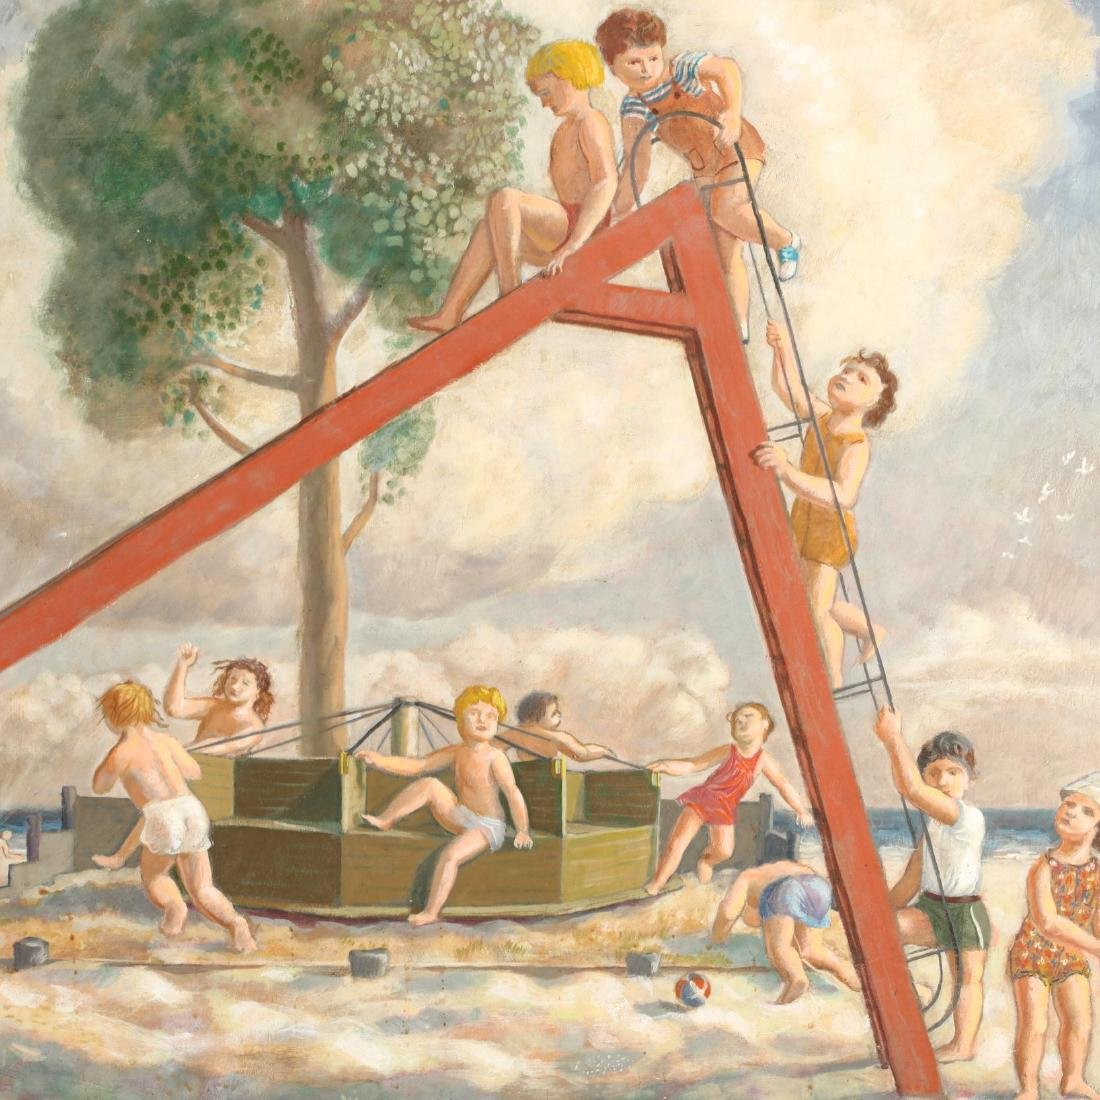 James Bonelli (PA, 1916-2000),  Beach Playground - 4